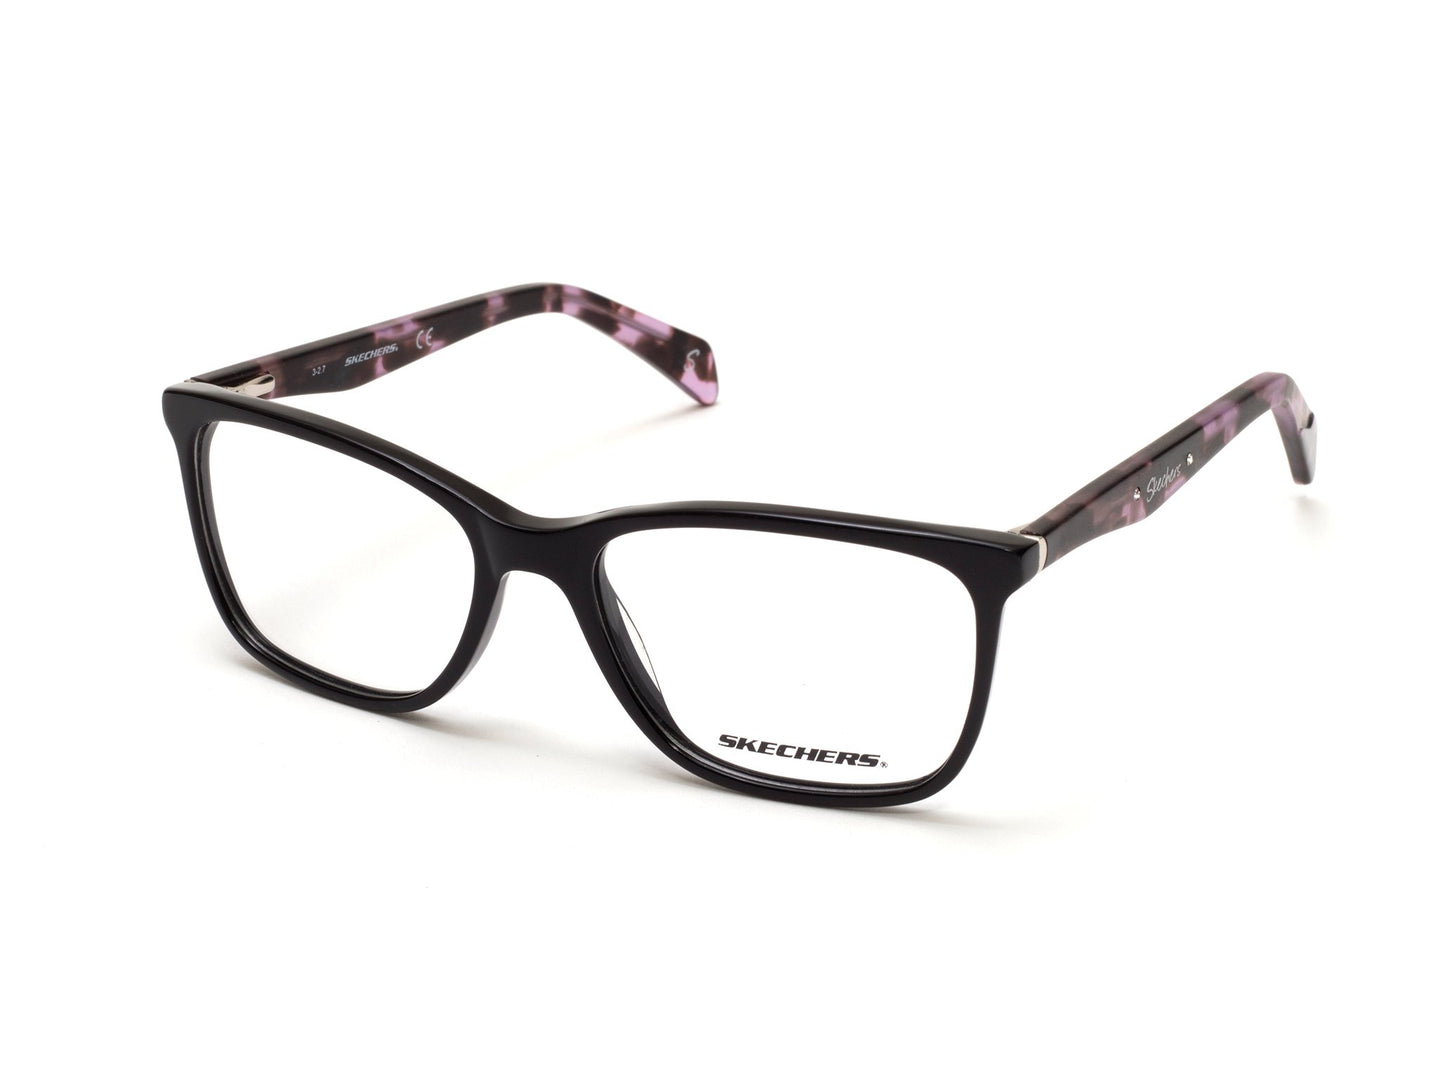 Skechers Optical-SE2135